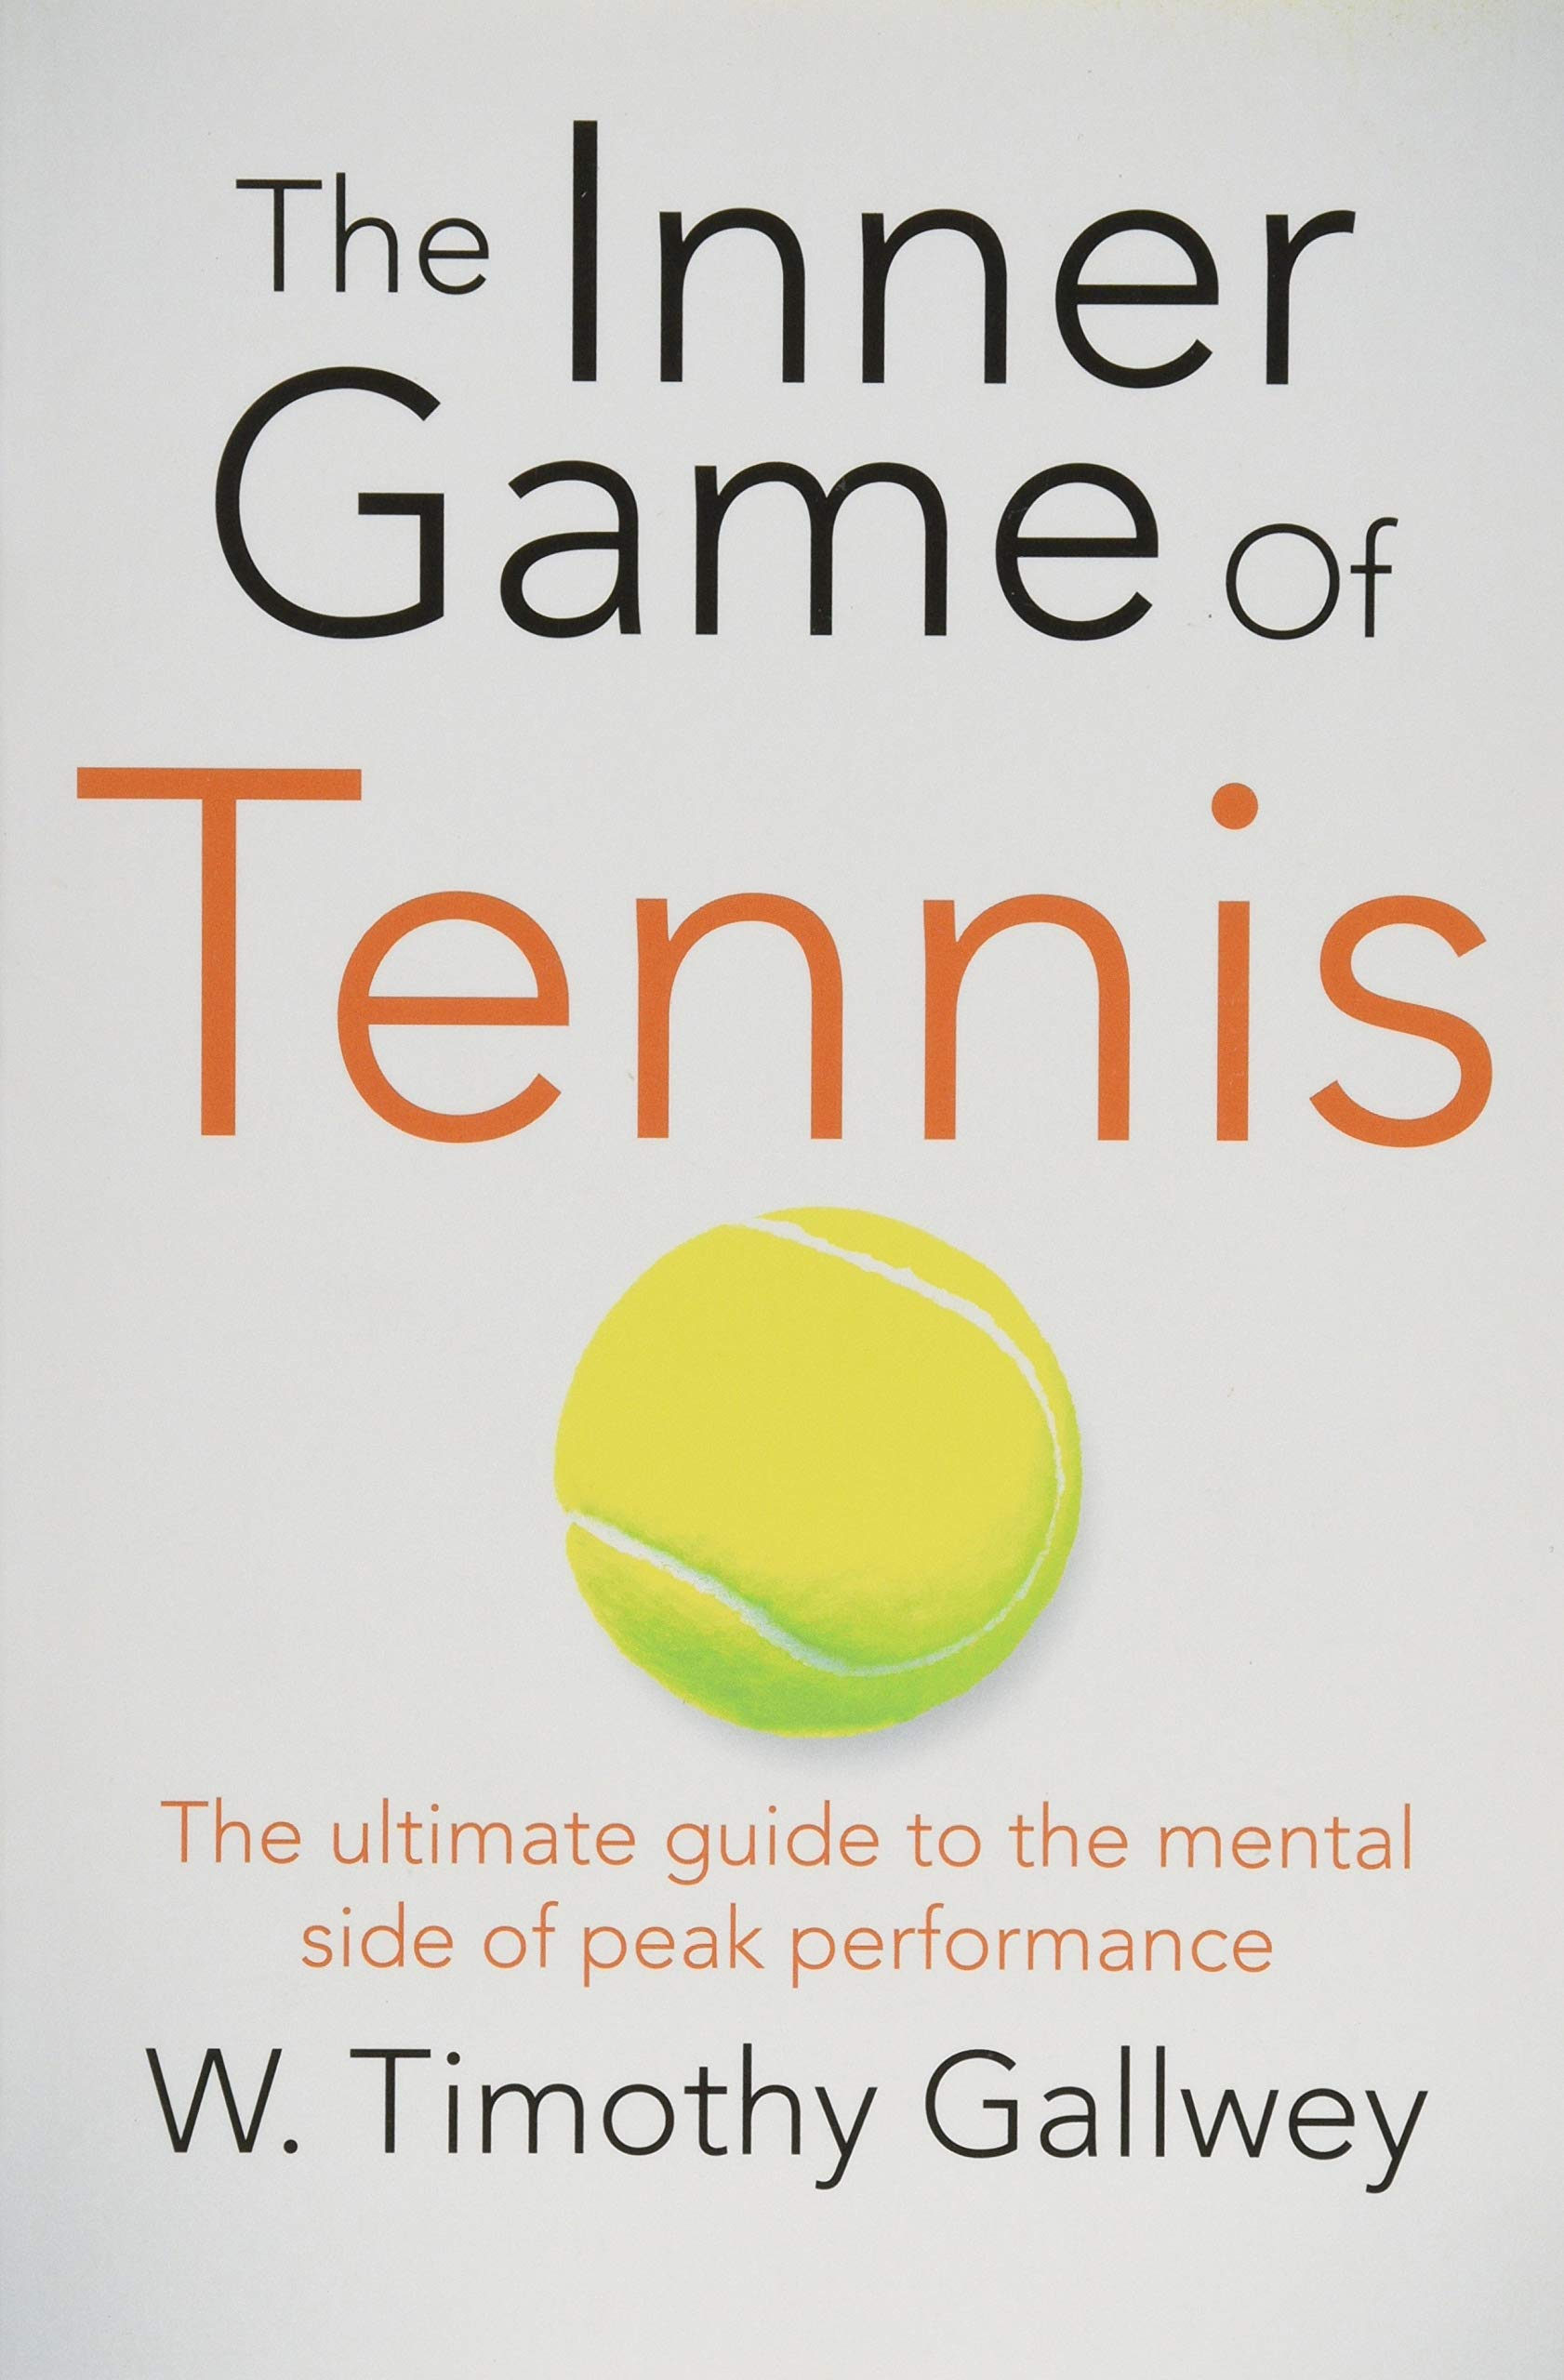 The Inner Game of Tennis: The Ultimate Guide to the Mental Side of Peak  Performance: Amazon.es: W. Timothy Gallwey: Libros en idiomas extranjeros